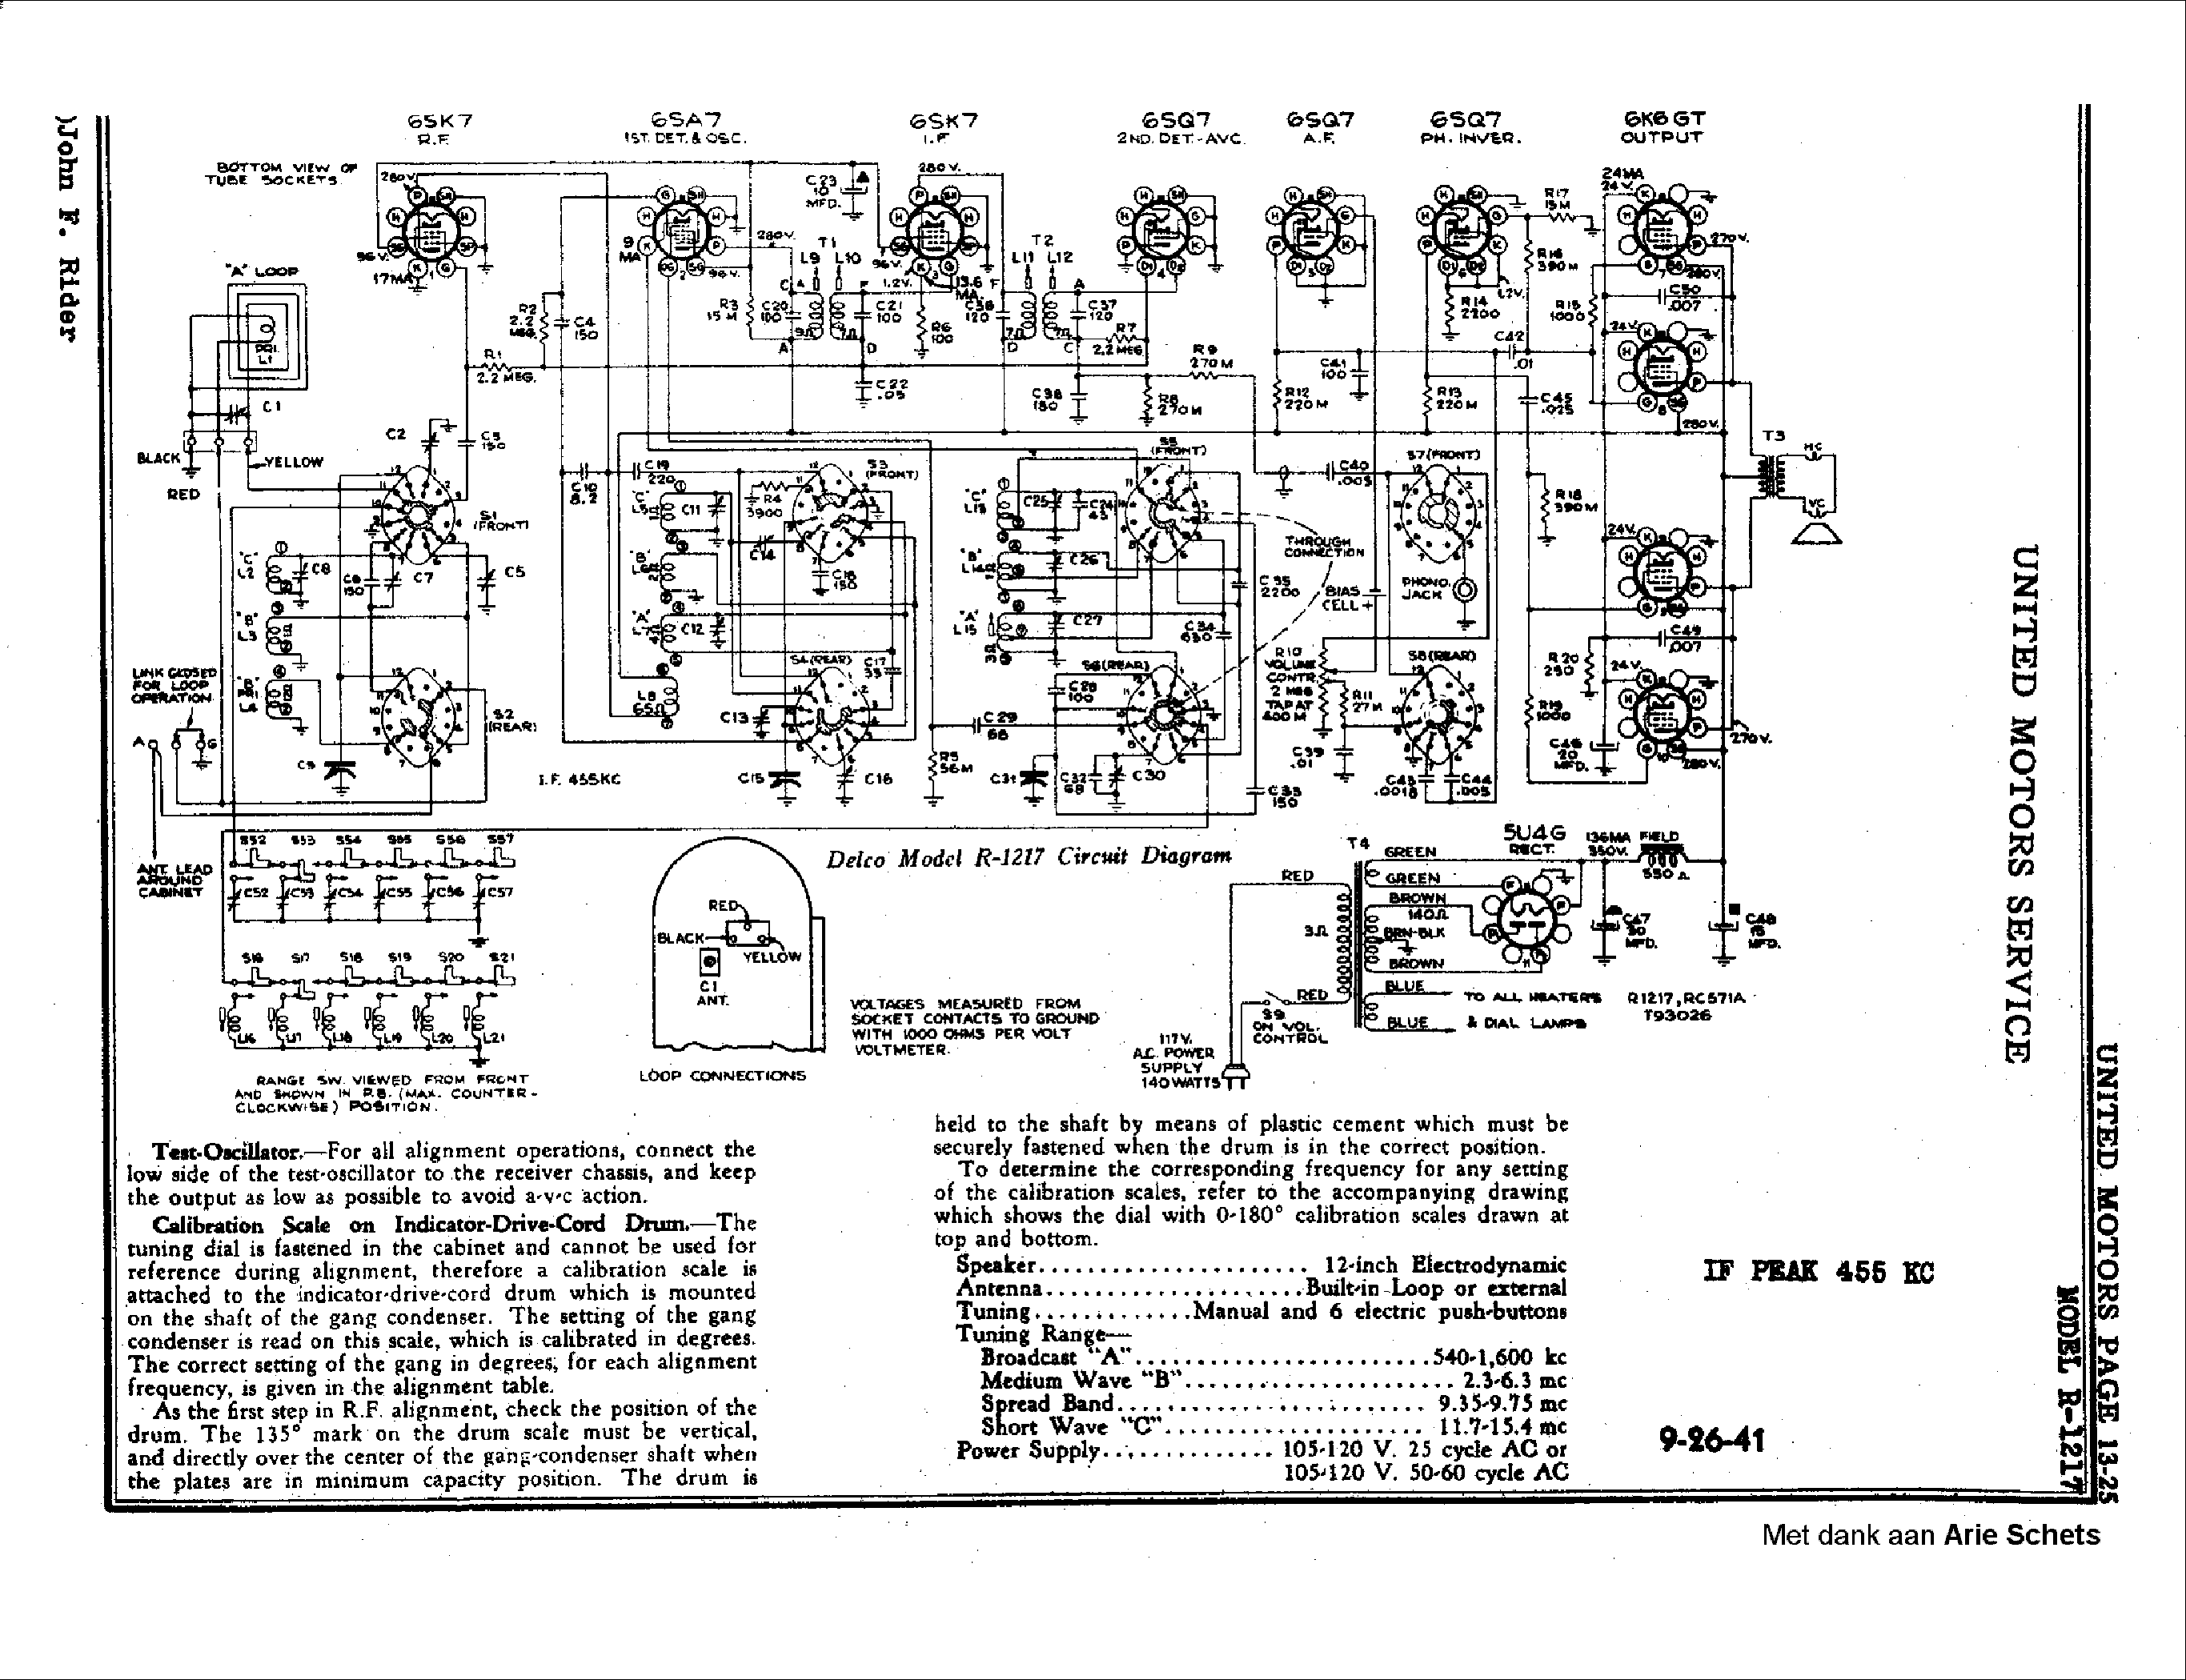 DELCO CDR500 MANUAL PDF